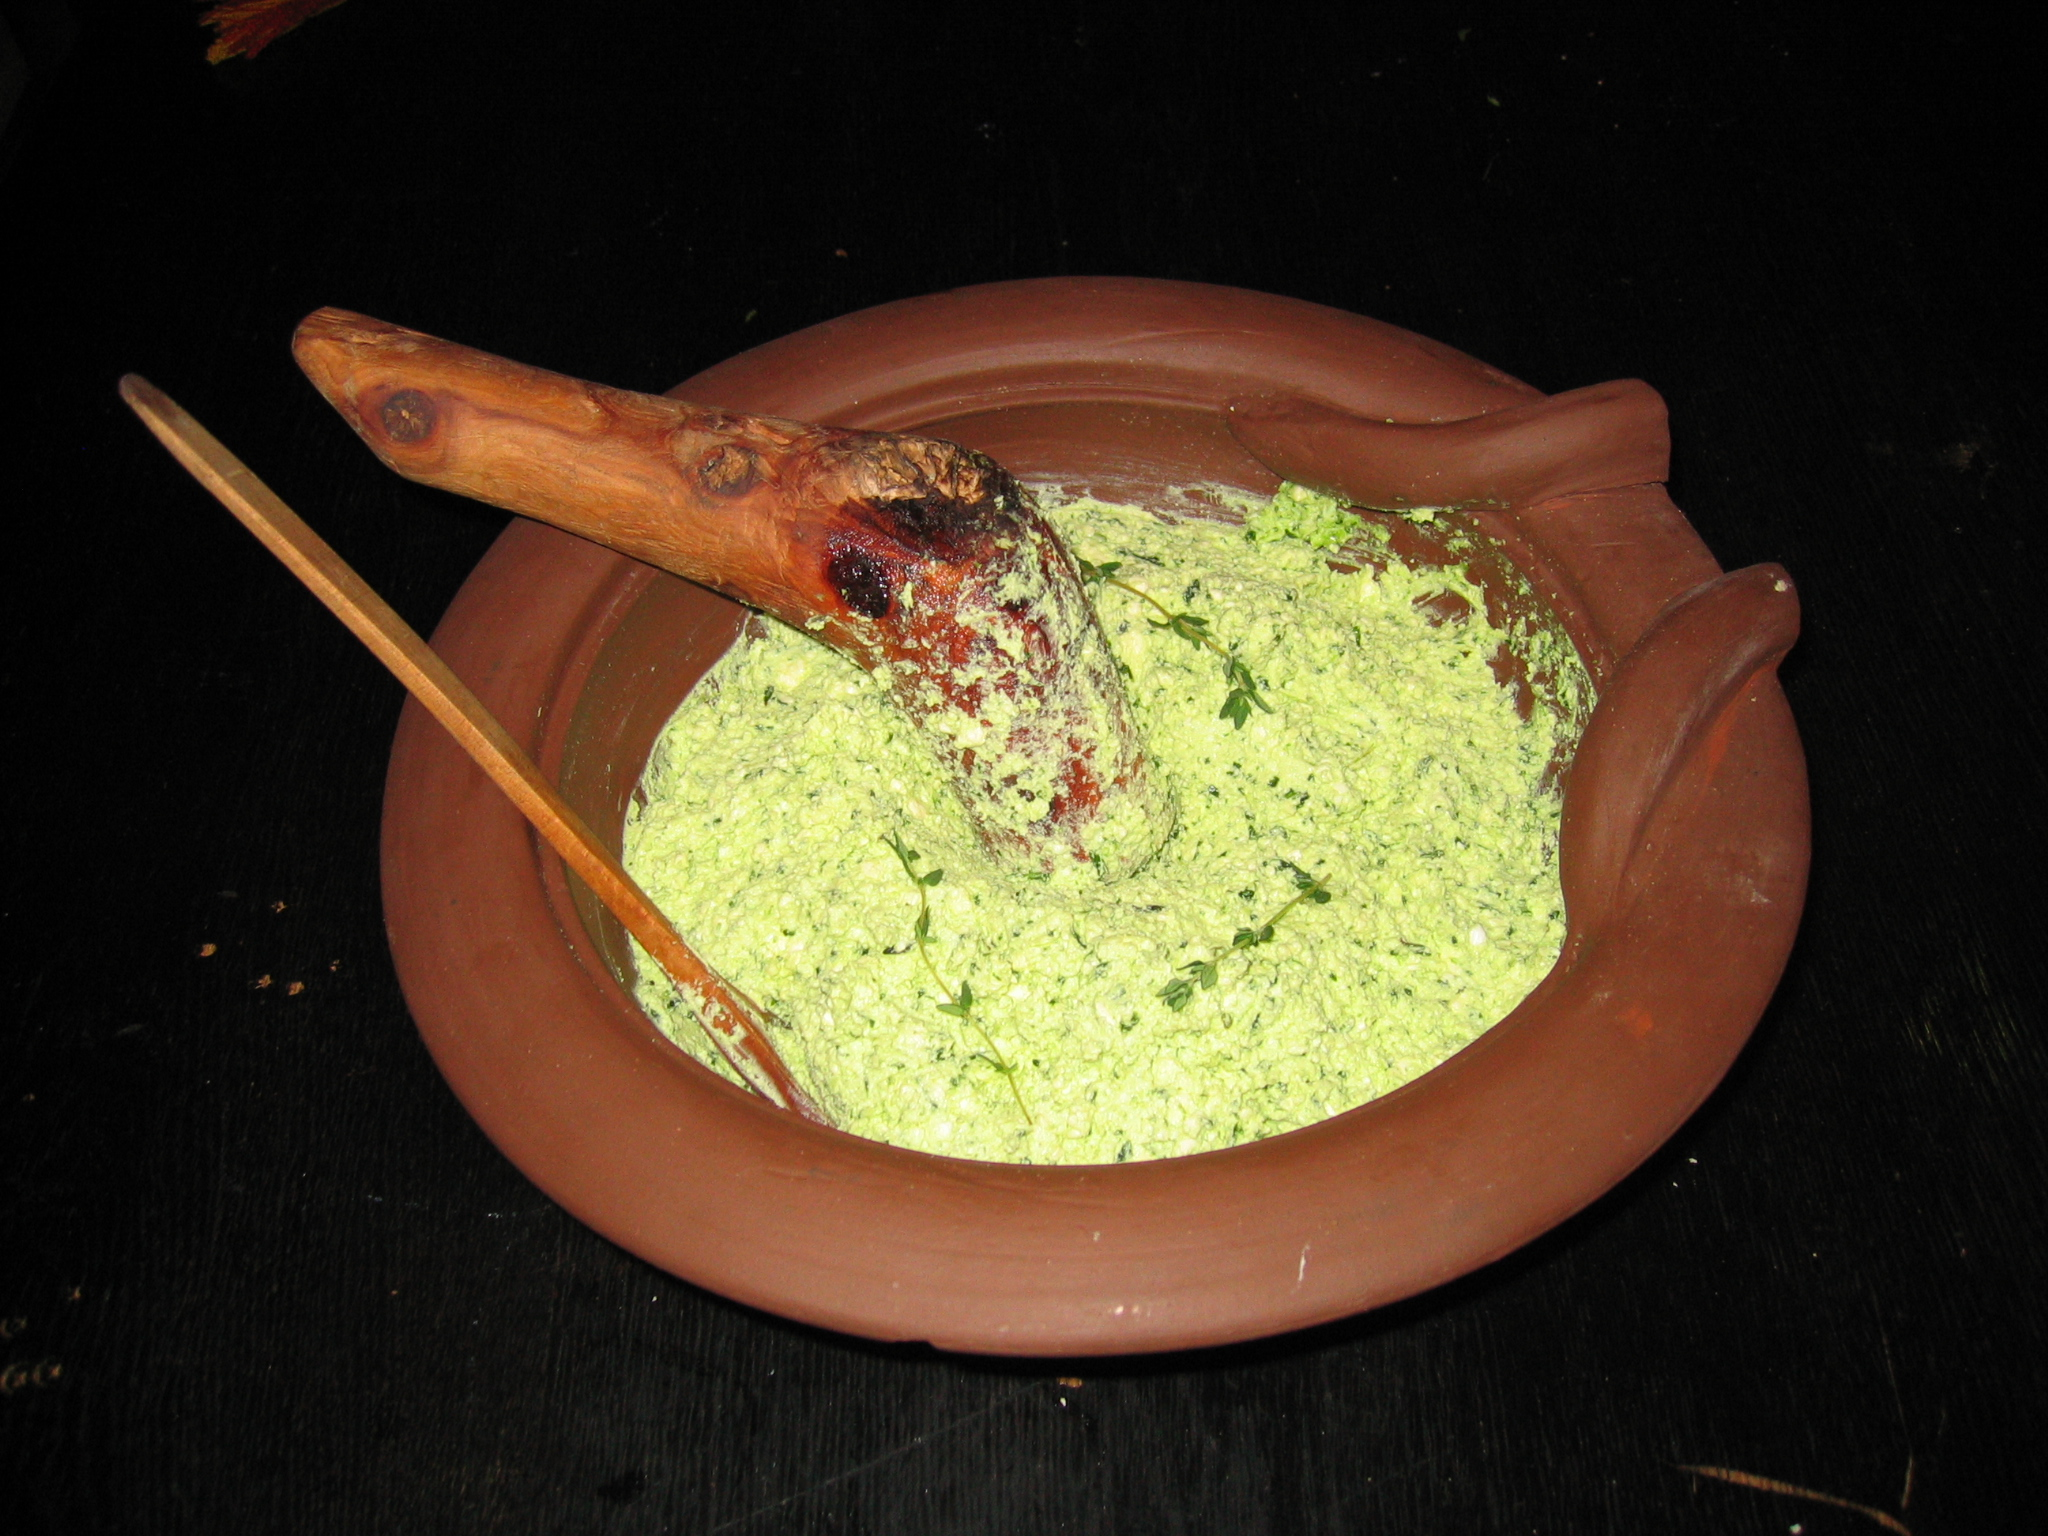 Bon appetit wednesday ancient roman garlic pesto moretum our recipe this week is straight out of the pages of roman literature moretum is a delicious spread similar to our pestoand the roman poet virgil was forumfinder Image collections